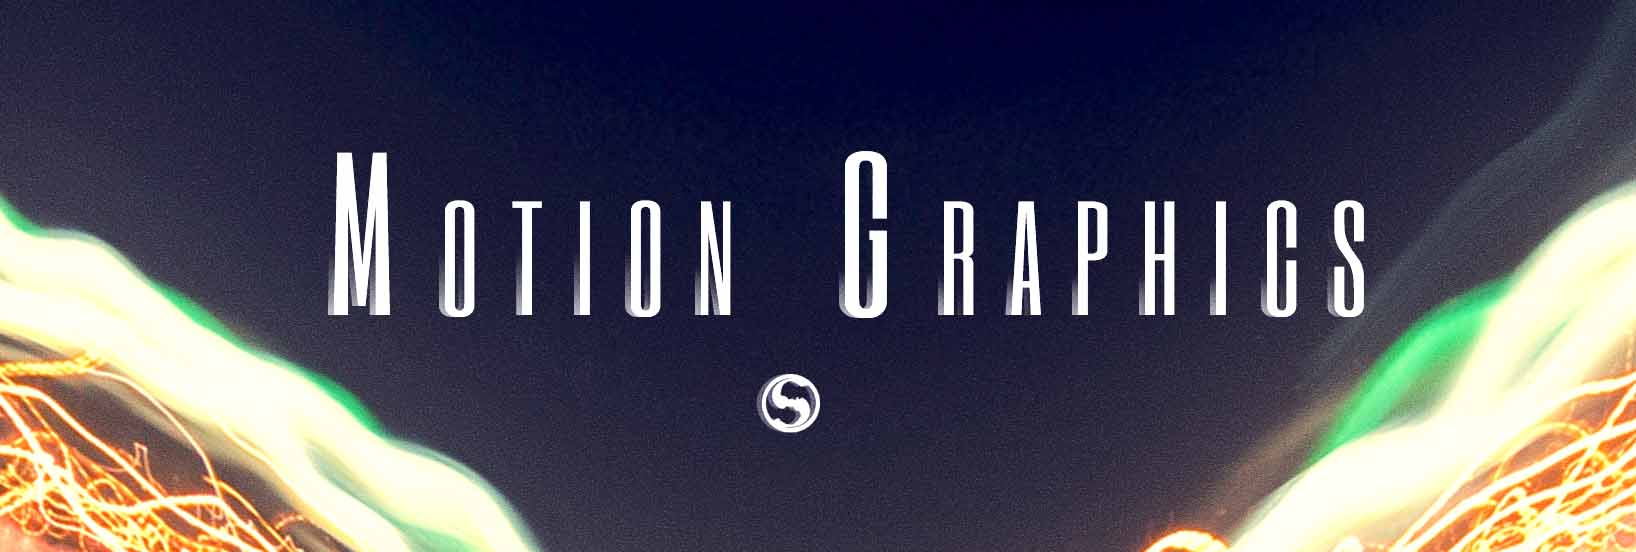 Motion Graphics2